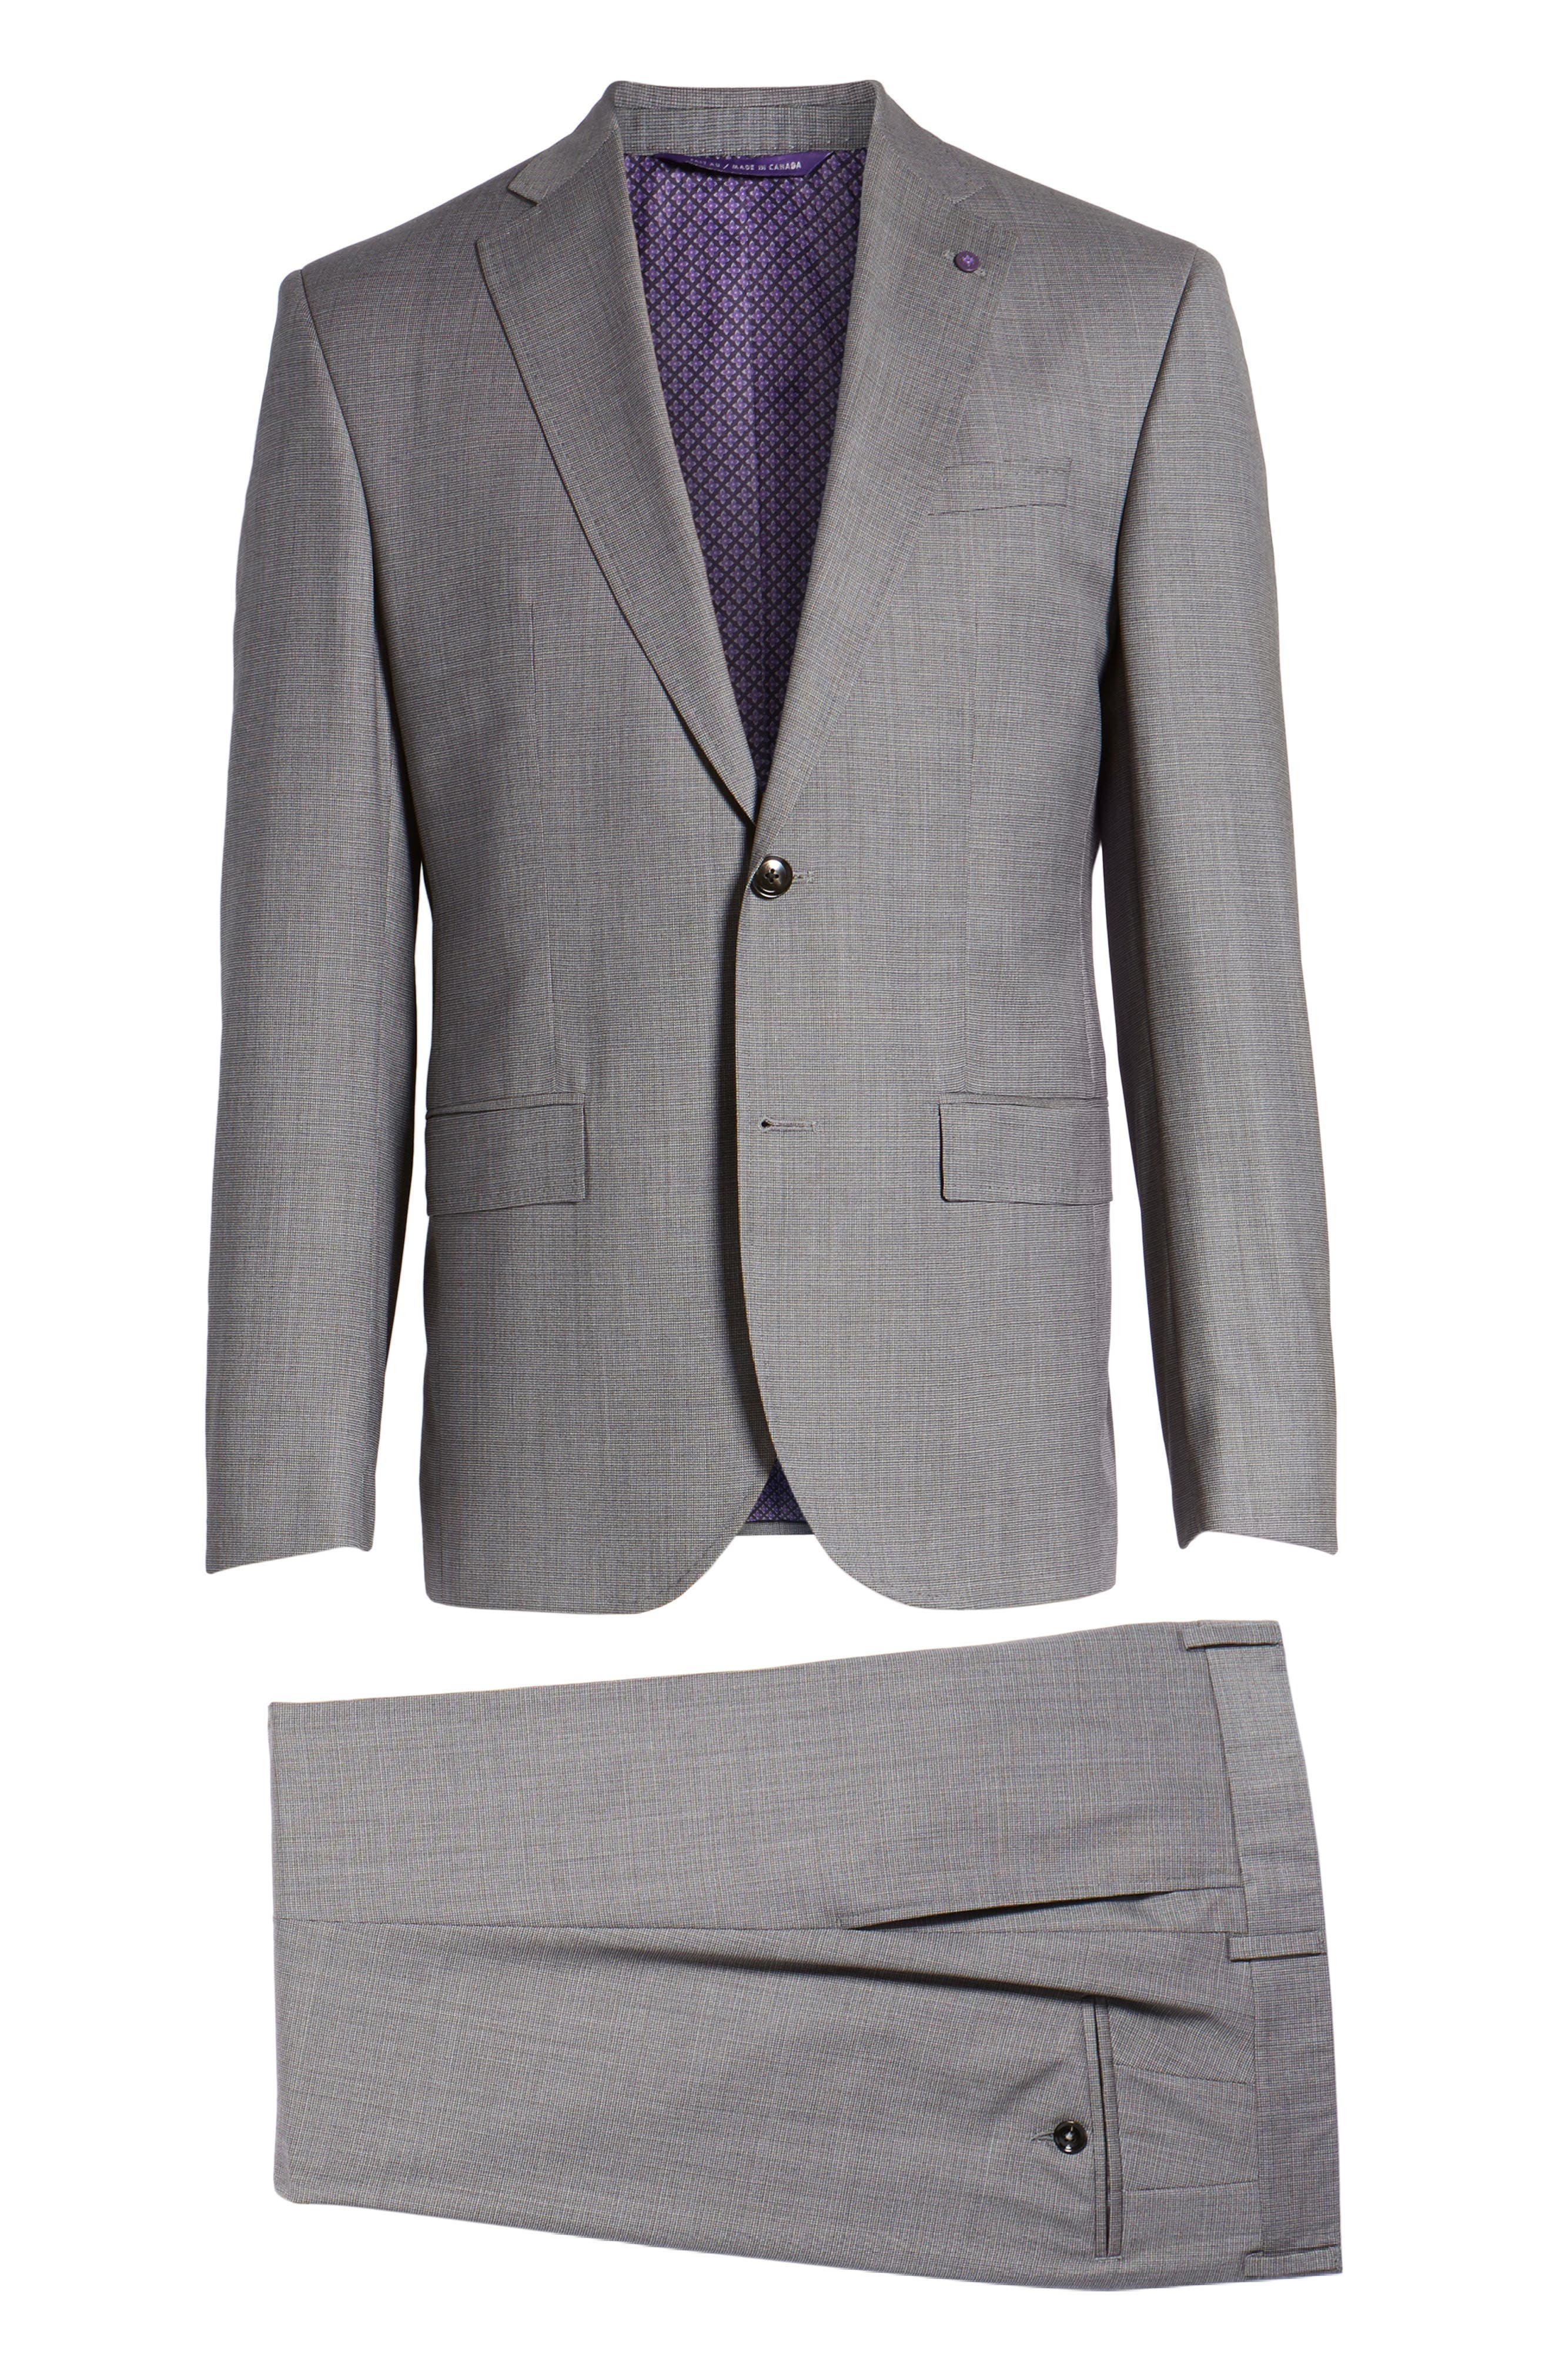 Roger Extra Slim Fit Solid Wool Suit,                             Alternate thumbnail 8, color,